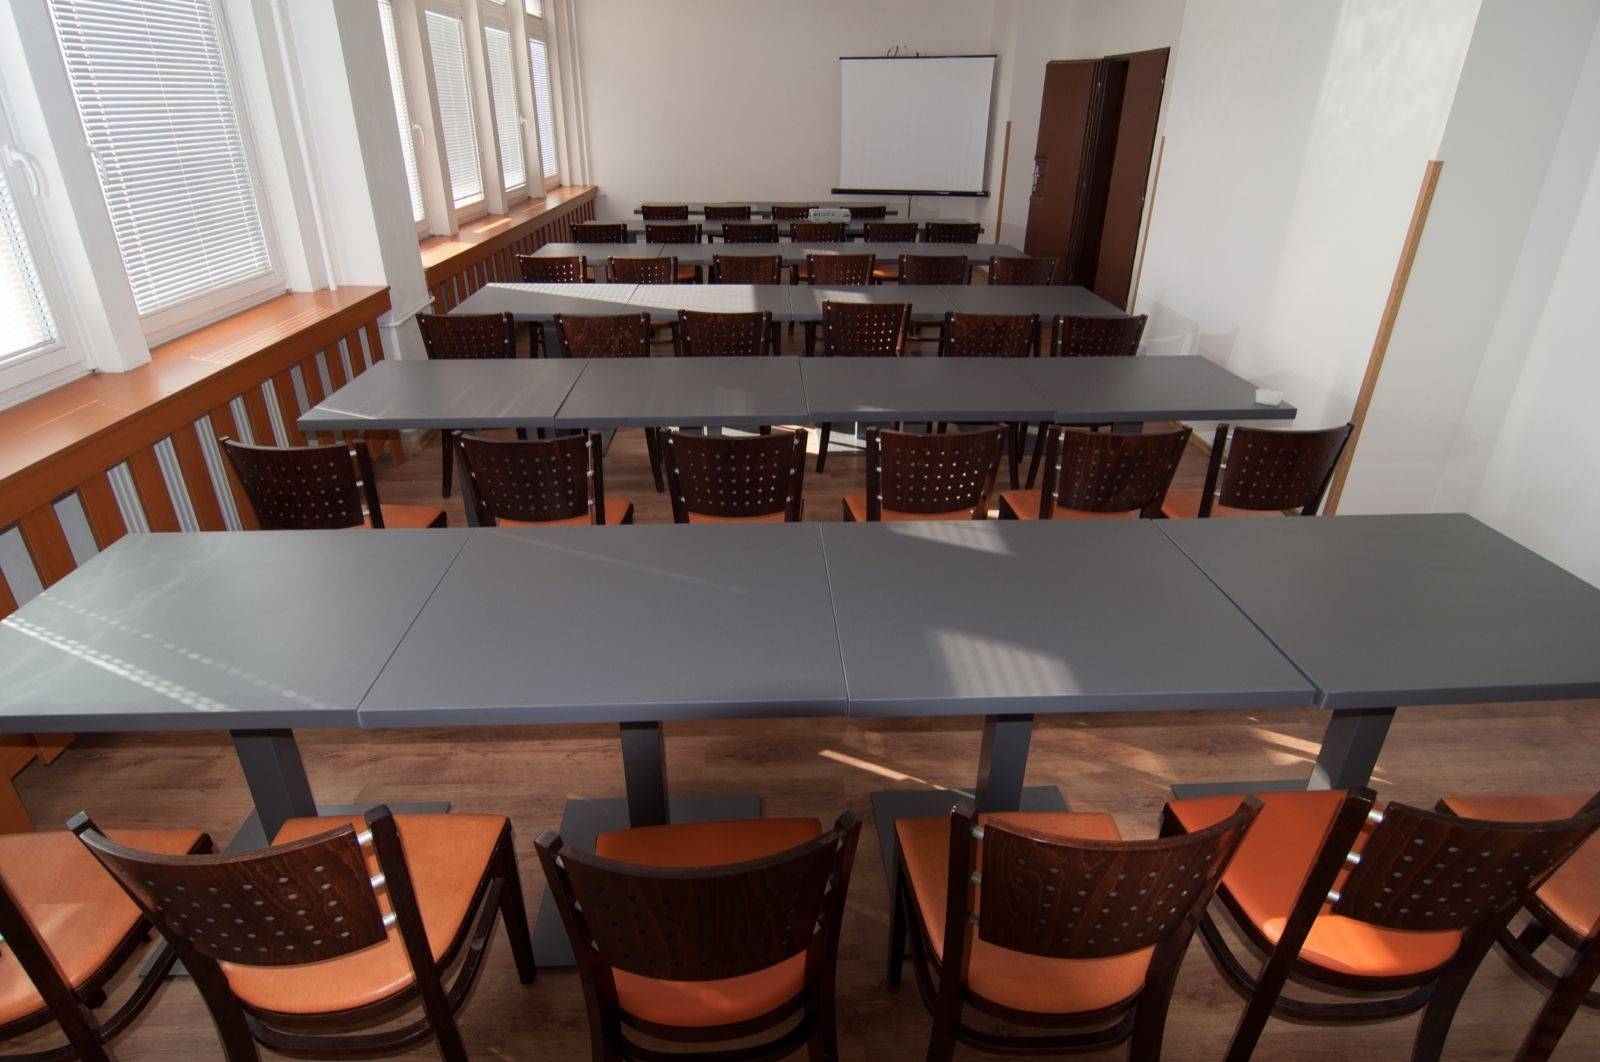 Hotel Avion Bratislava - The large conference room